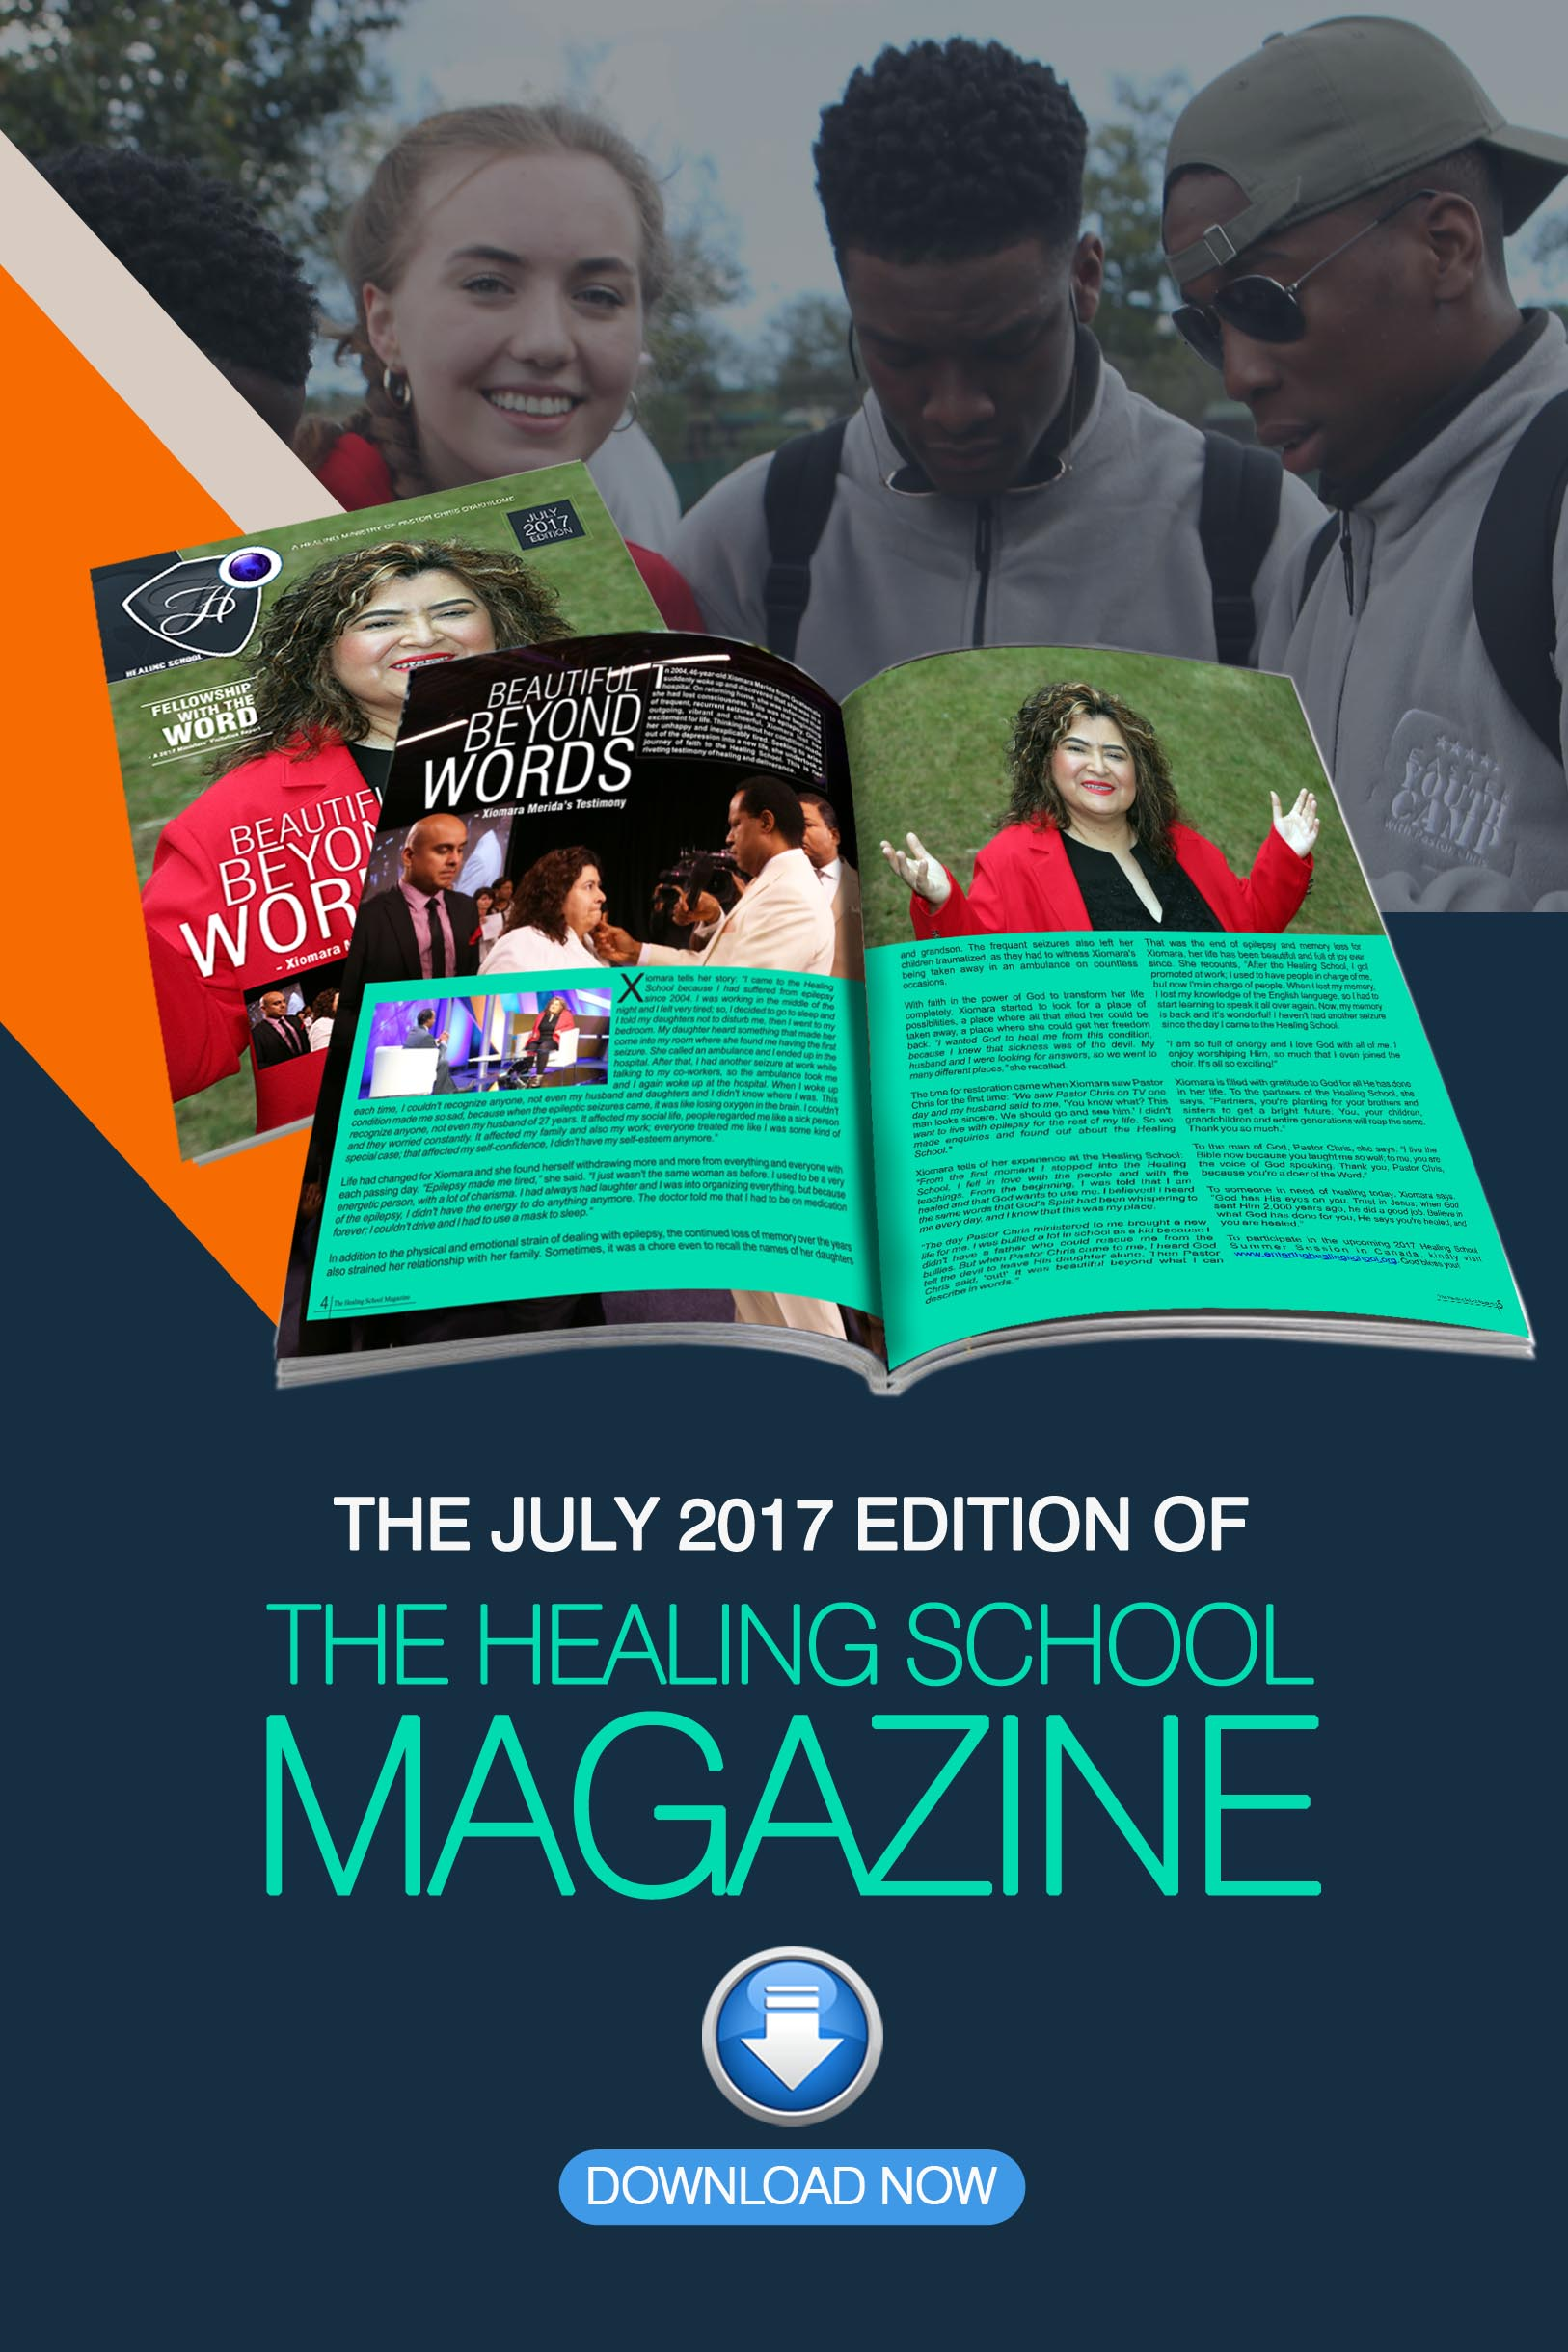 The Healing School Magazine - July 2017 Edition